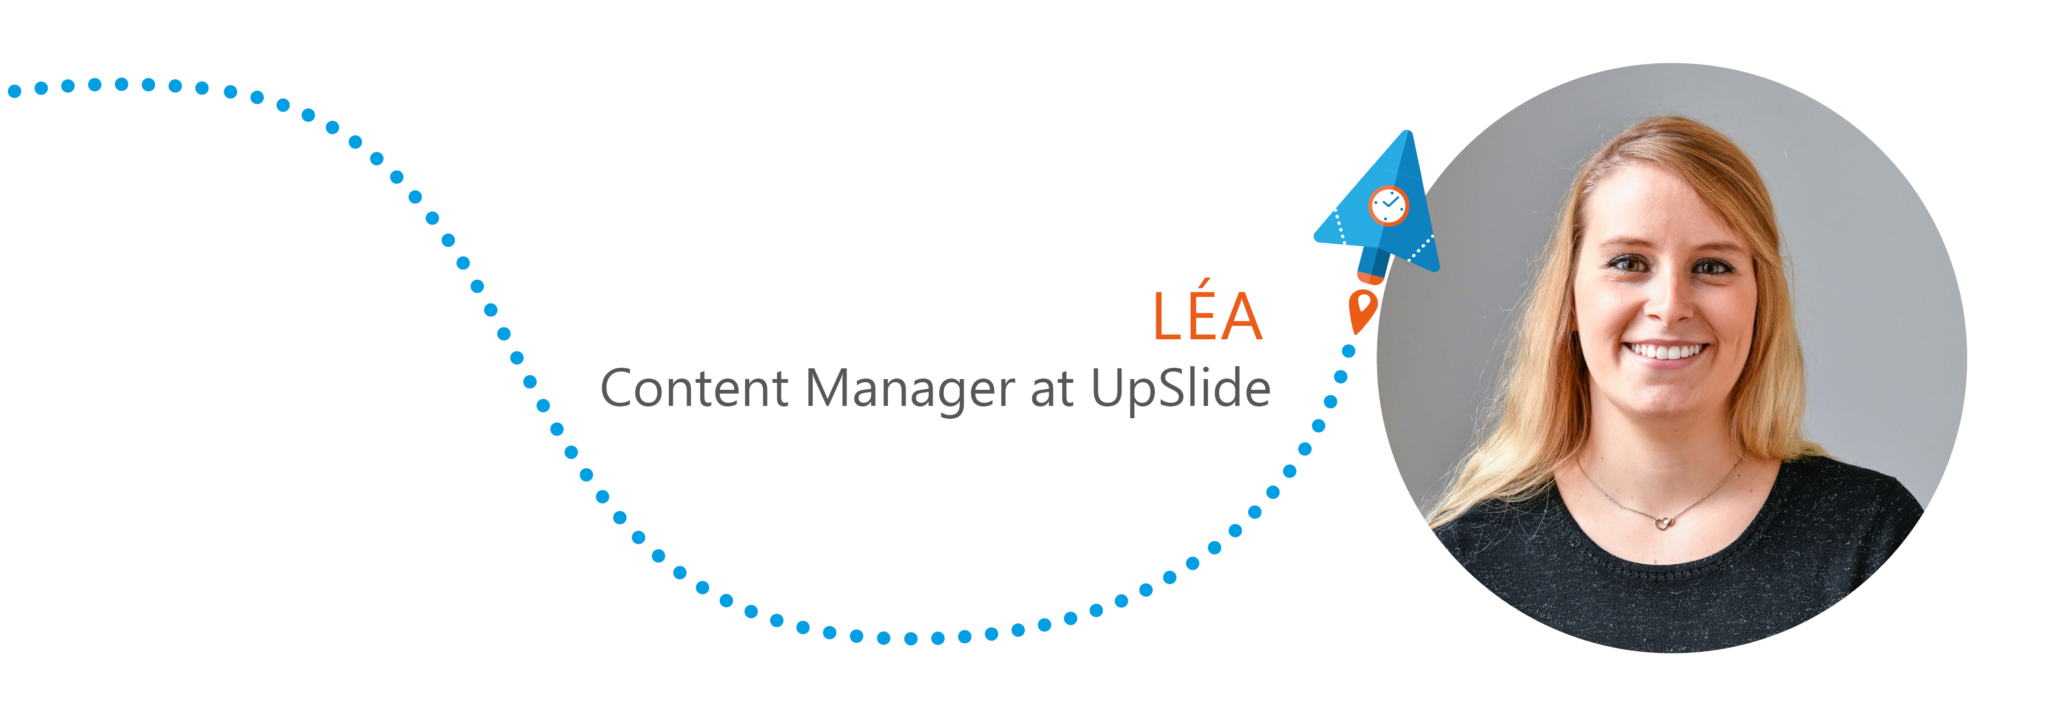 Welcome Léa, Content Manager